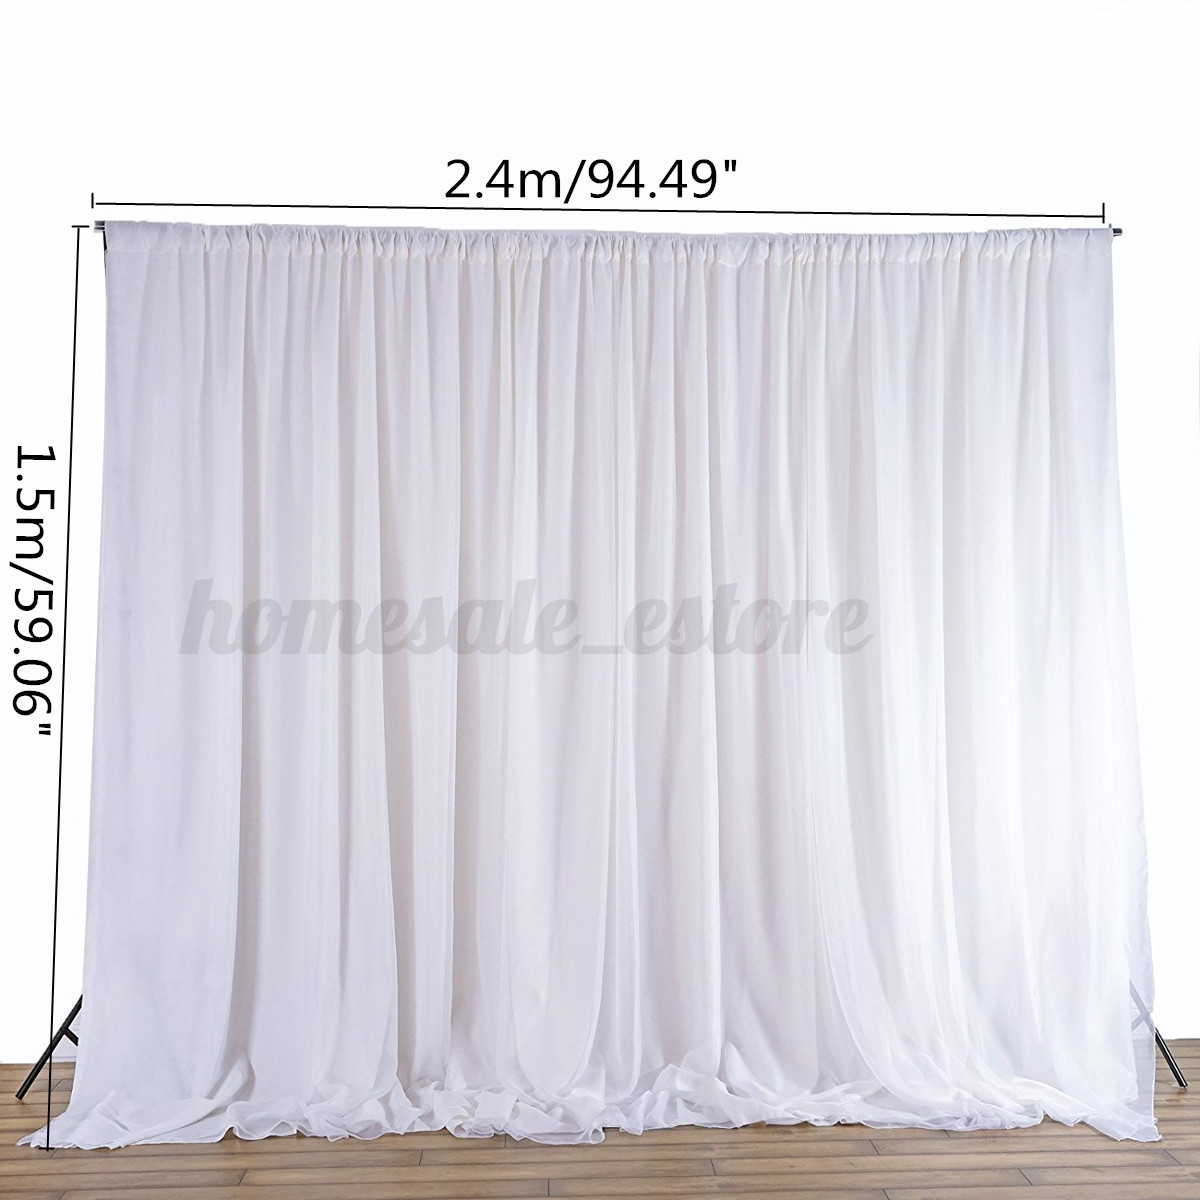 24M White Wedding Party Backdrop Curtain Drapes